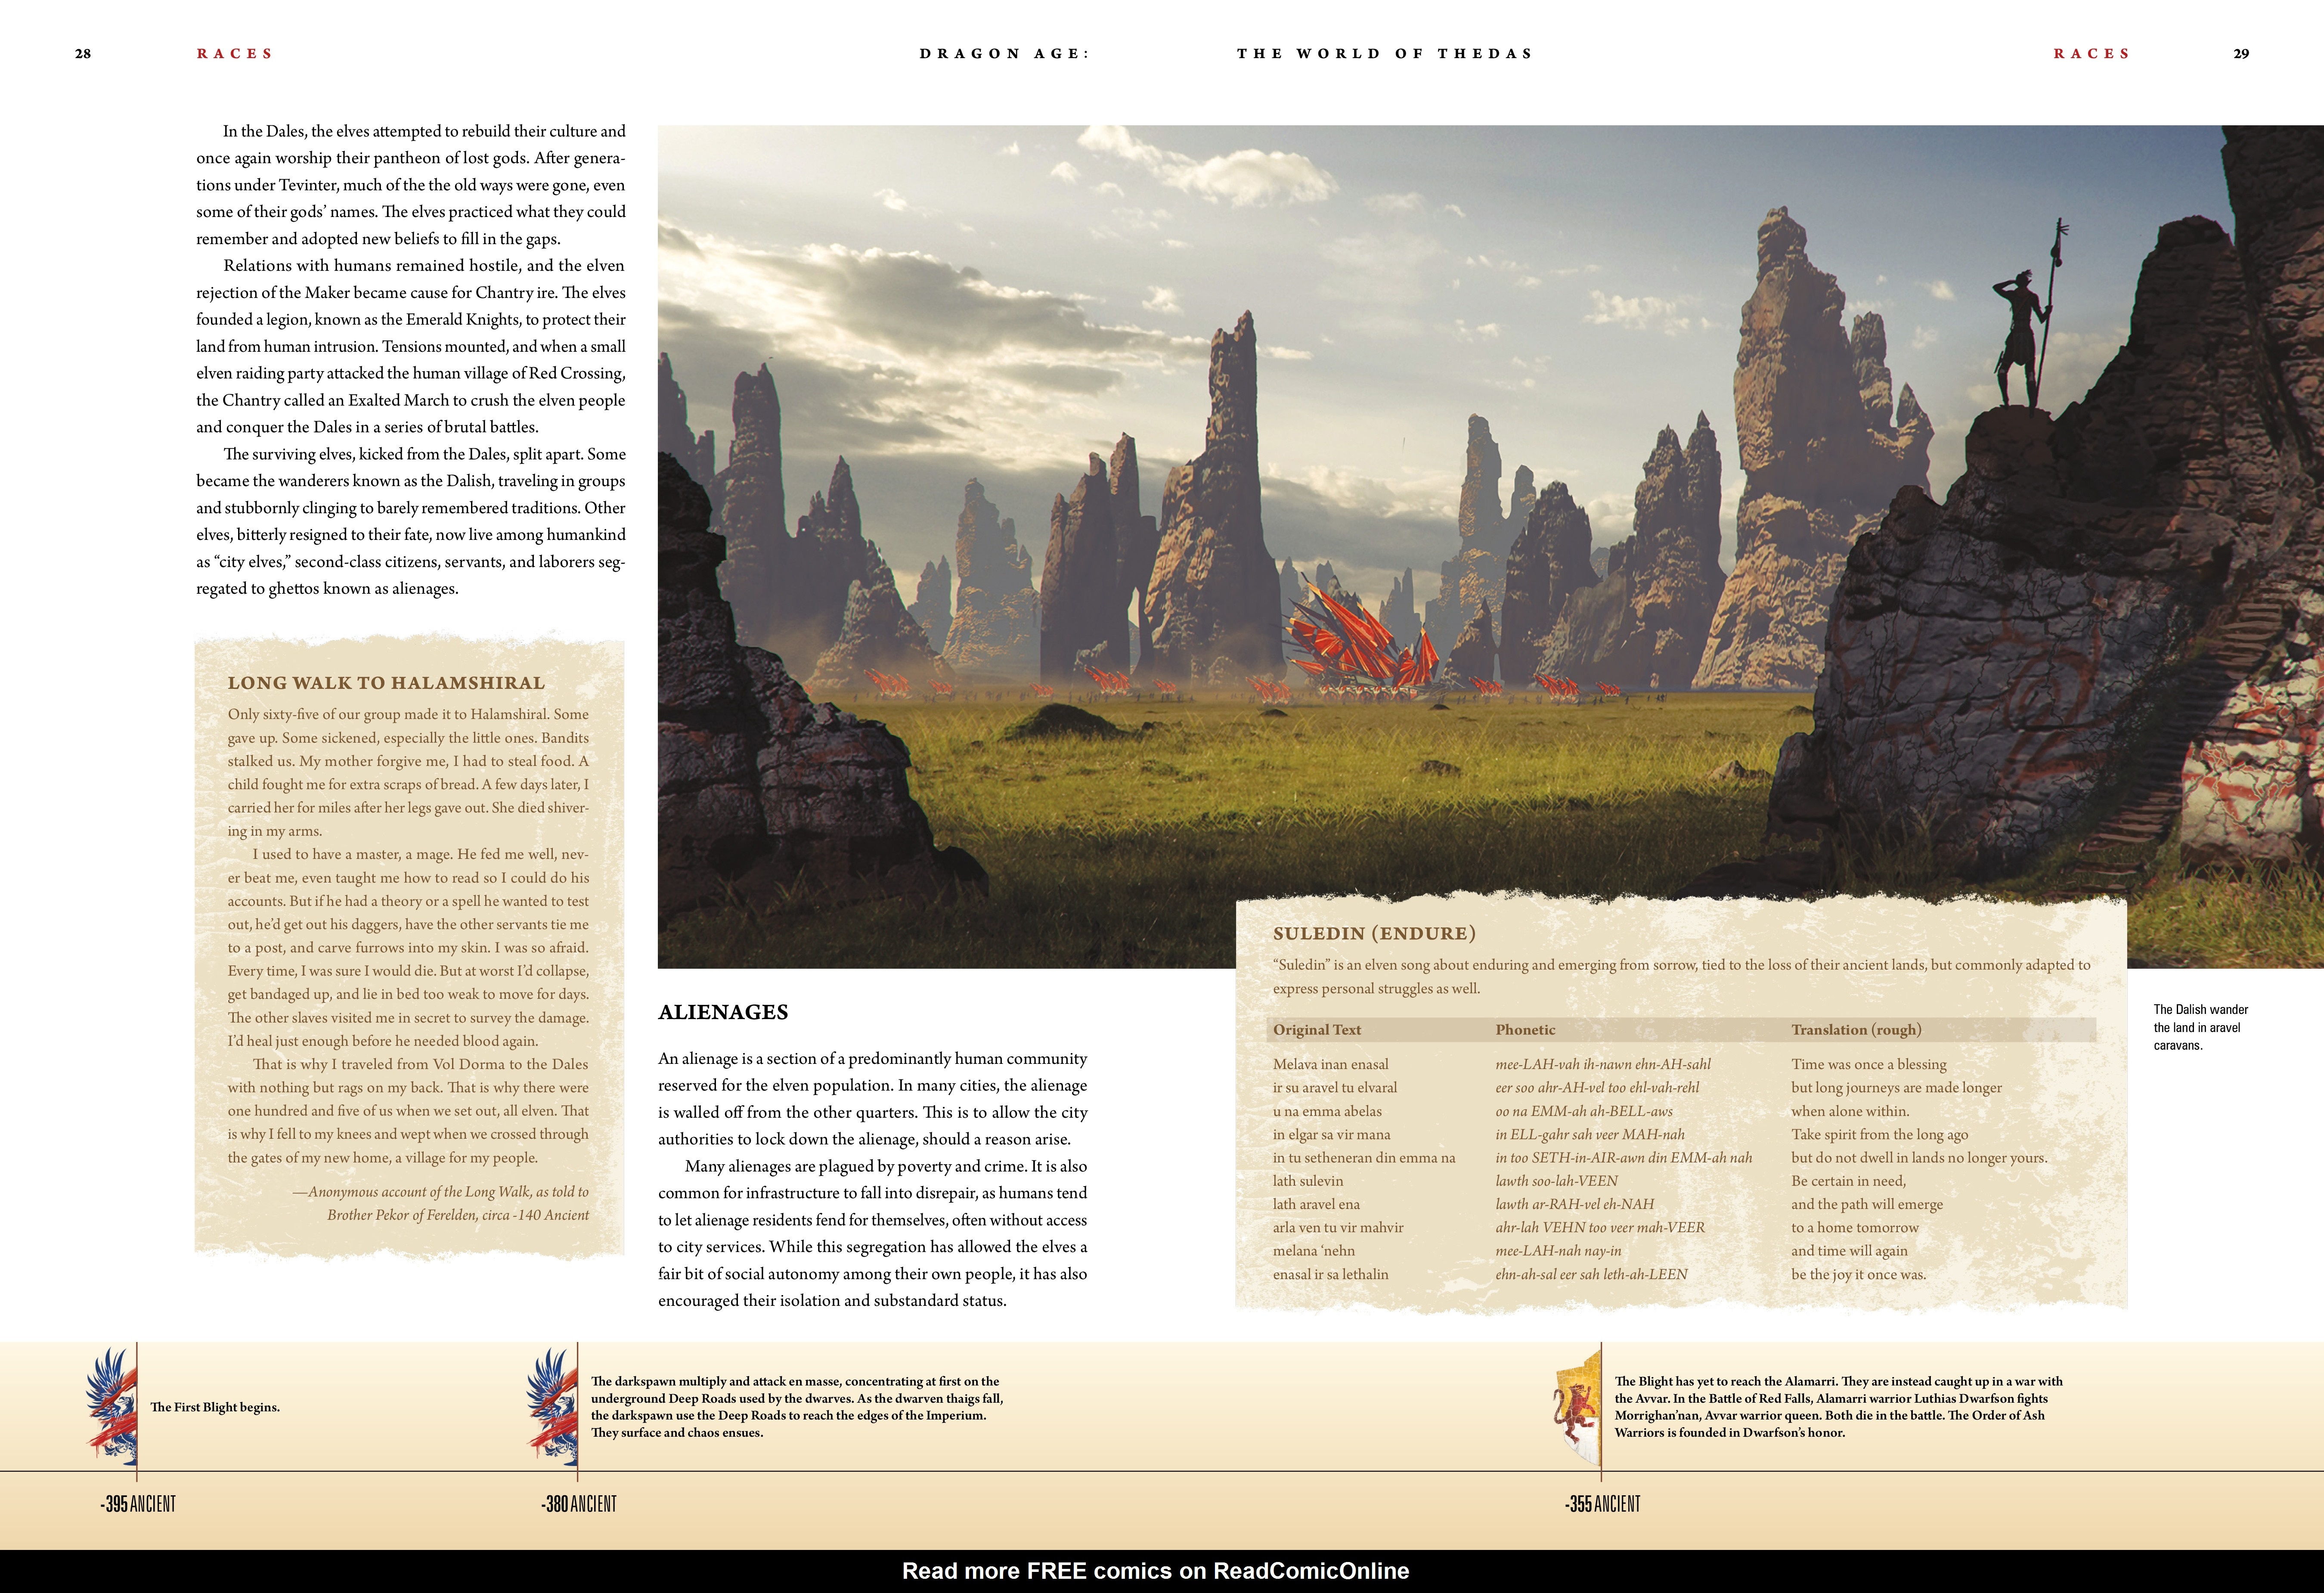 Read online Dragon Age: The World of Thedas comic -  Issue # TPB 1 - 23